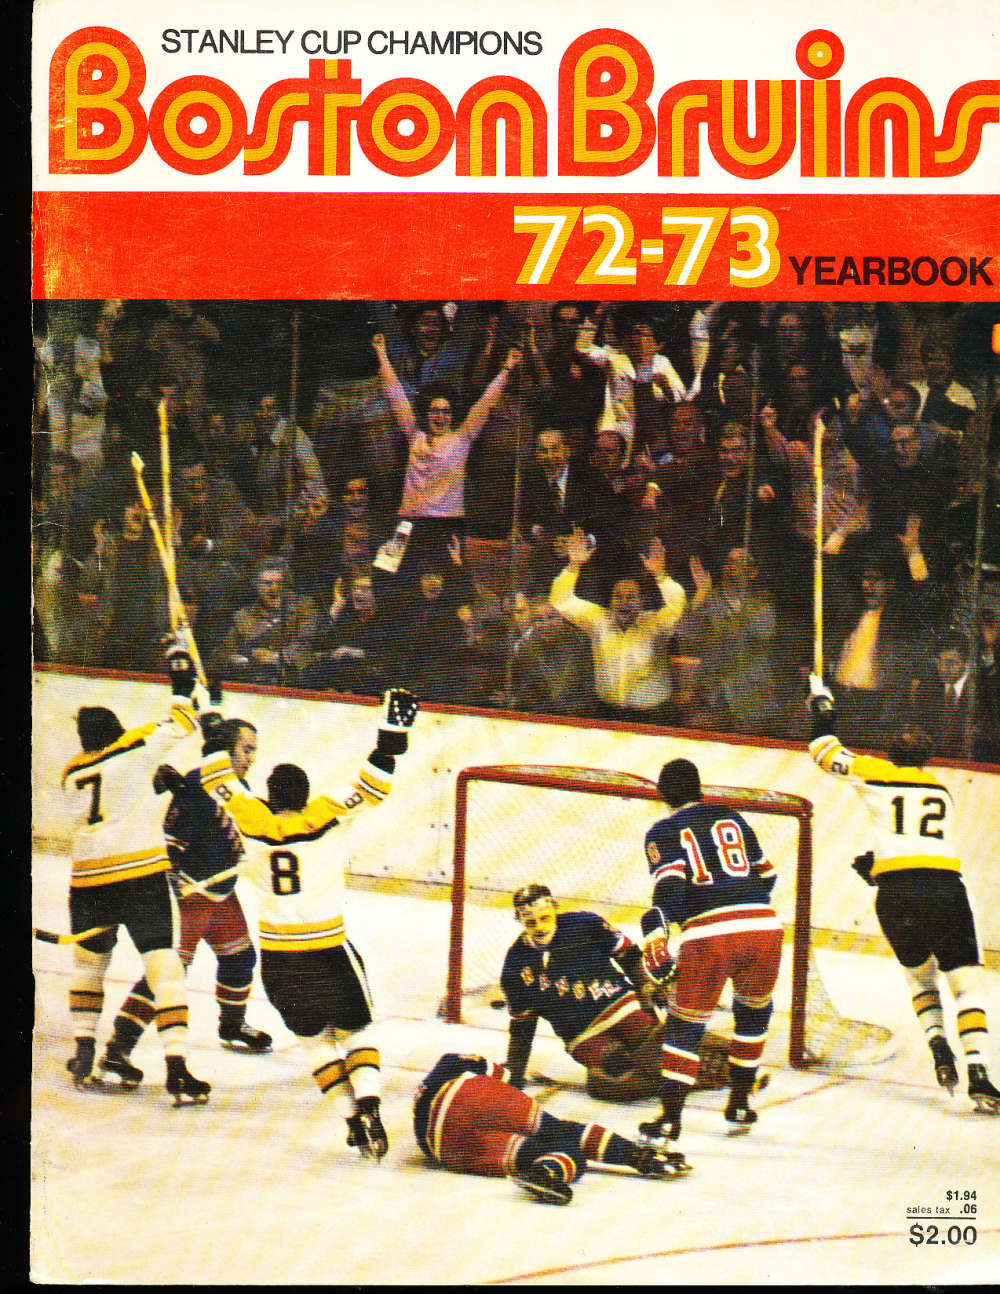 Boston Bruins 1972 Yearbook Stanley Cup en NHL1